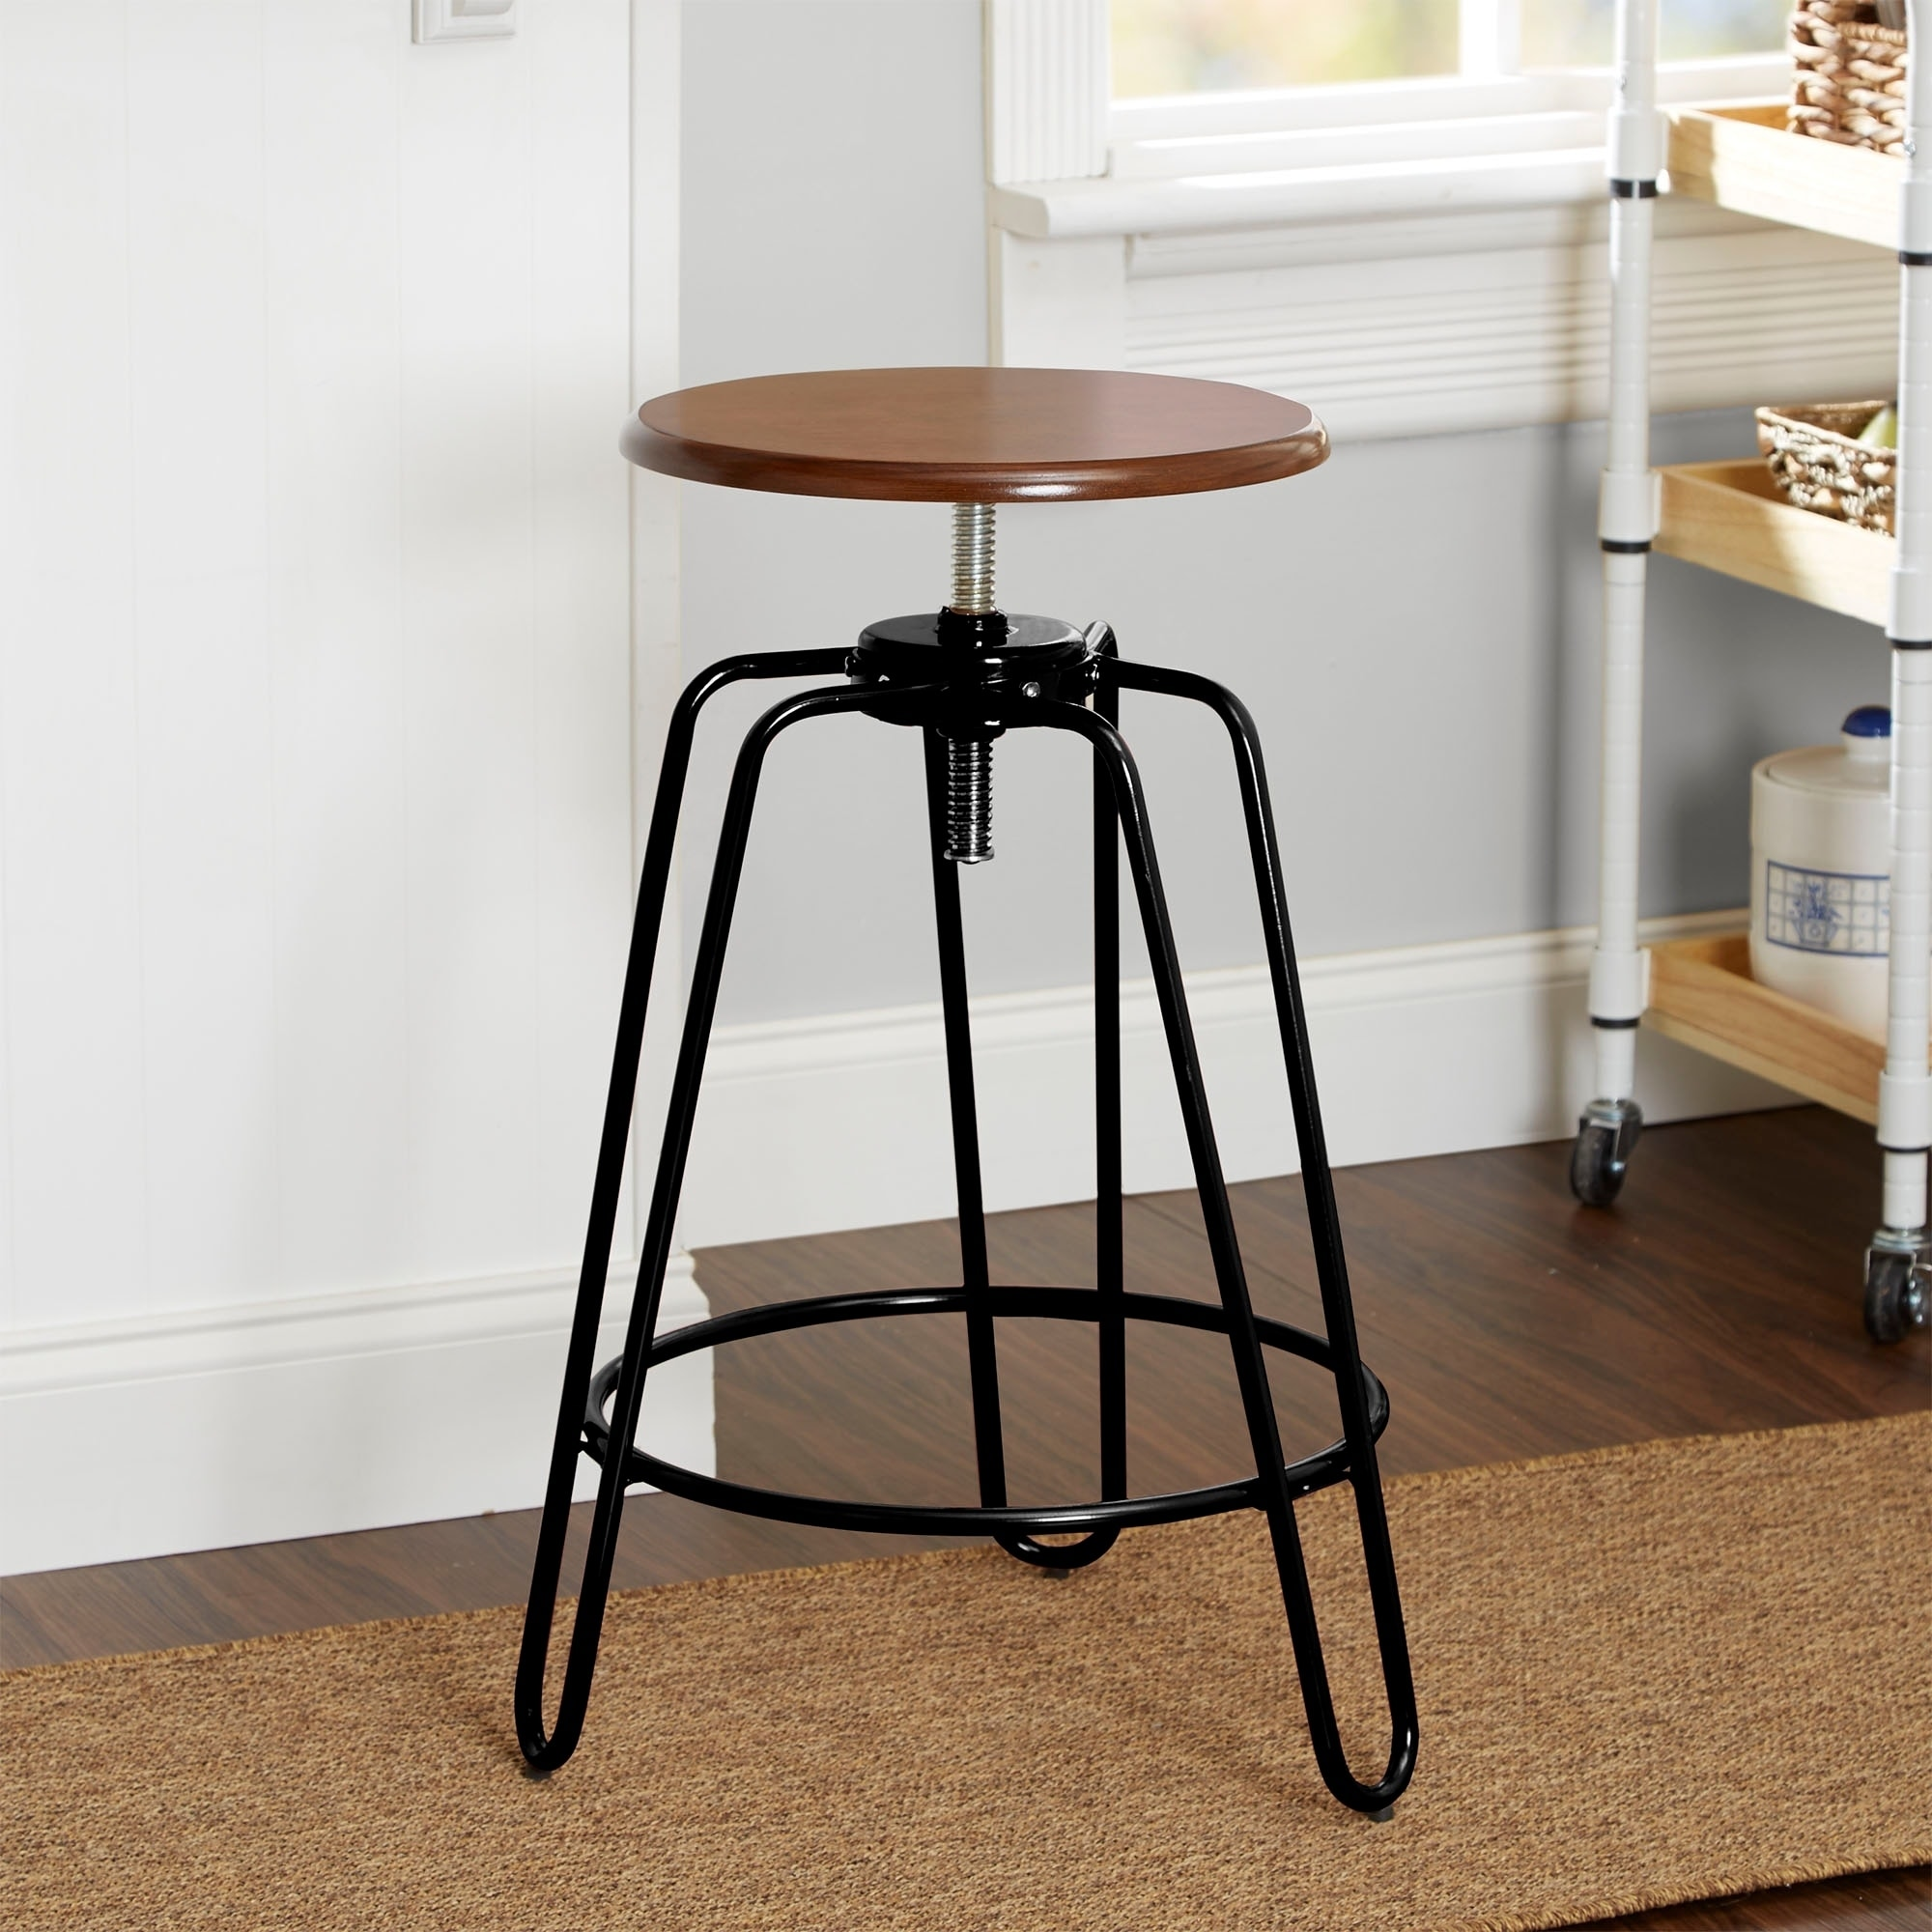 Astounding Adjustable Height Hairpin Leg Stool Gmtry Best Dining Table And Chair Ideas Images Gmtryco